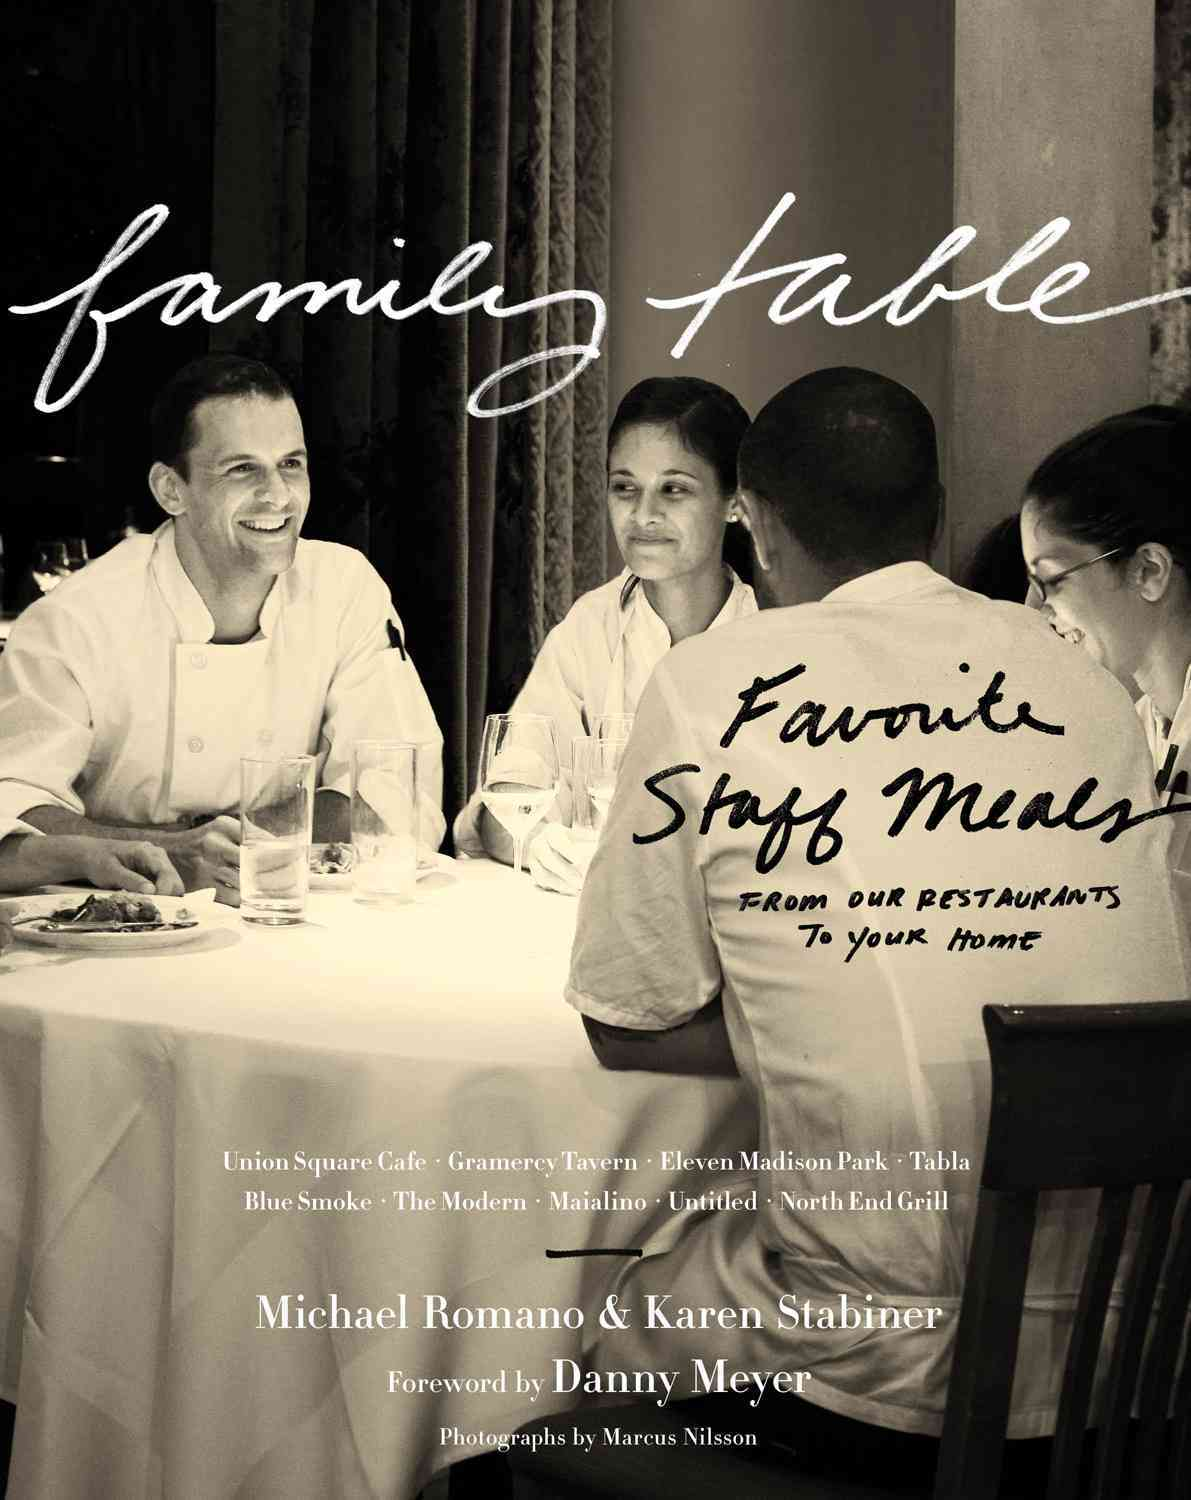 Family Table: Favorite Staff Meals from Our Restaurants to Your Home (Hardcover)